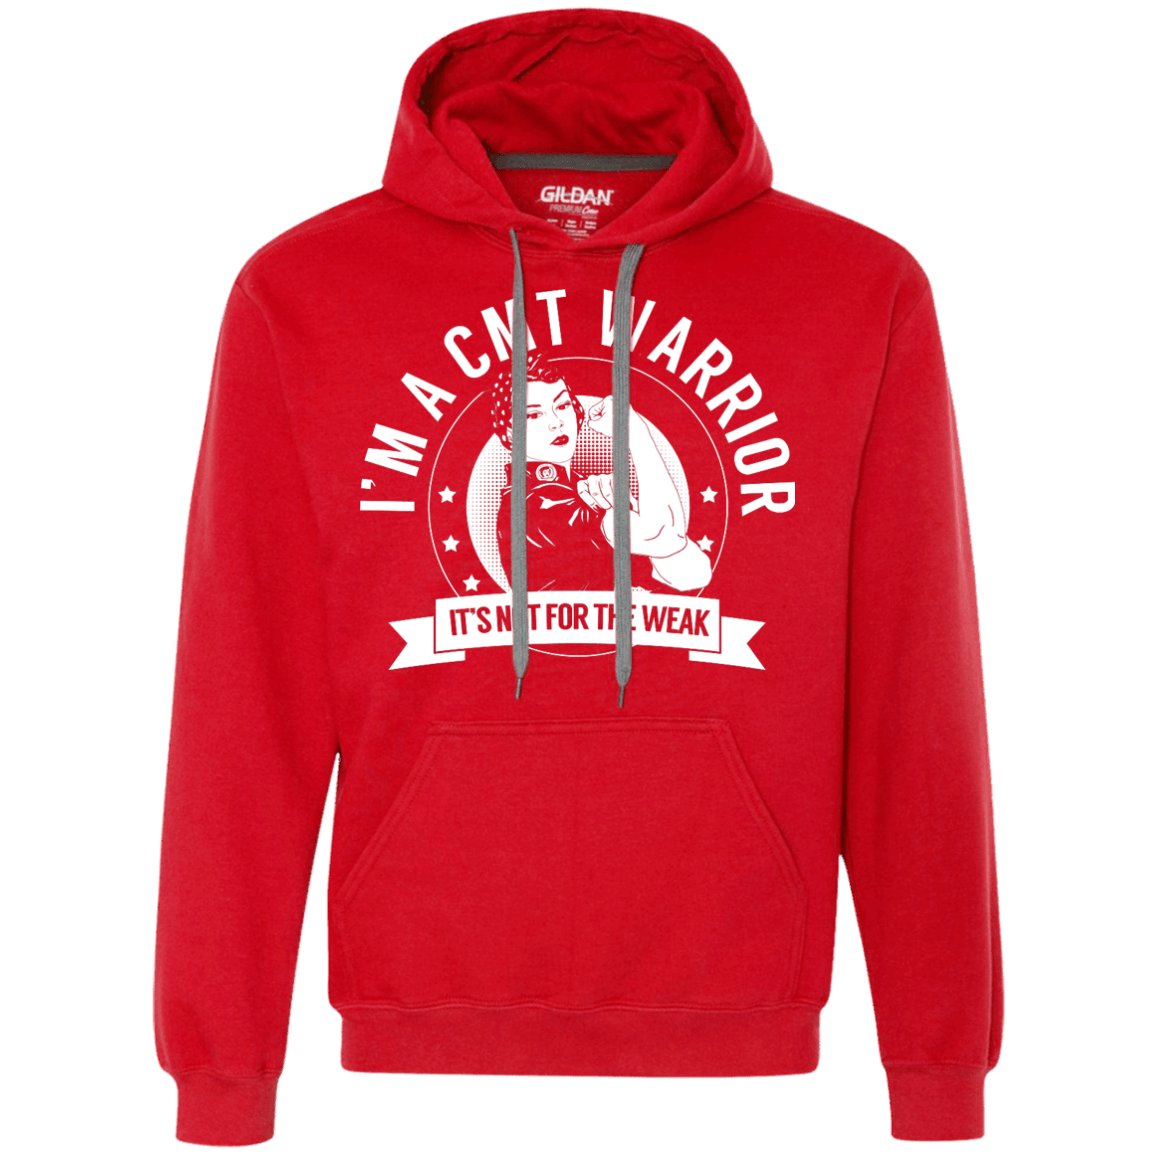 Charcot-Marie-Tooth Disease- CMT Warrior Not For The Weak Pullover Hoodie - The Unchargeables